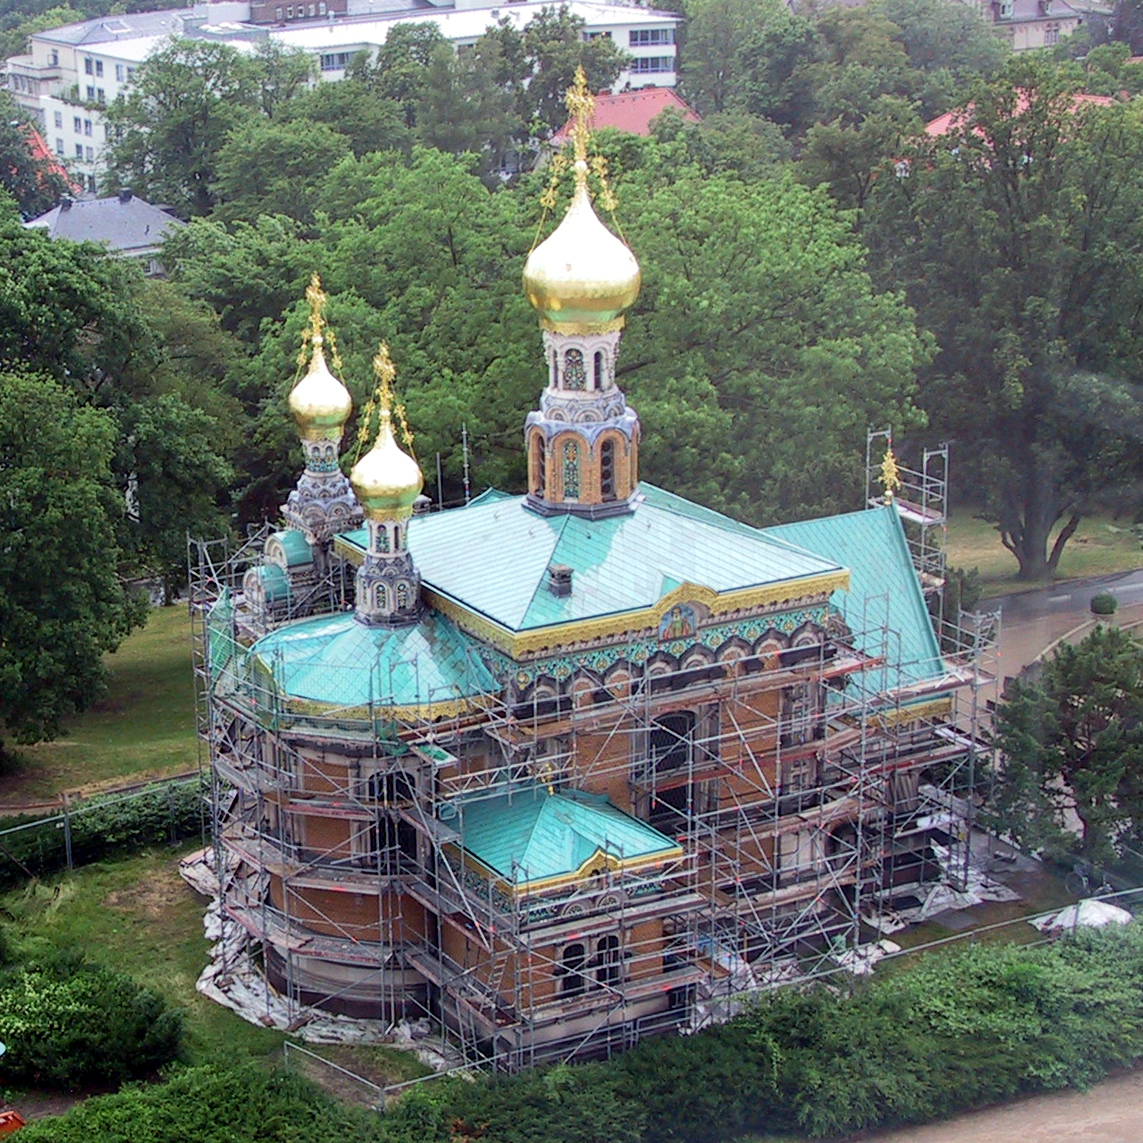 File:Russische Kapelle Darmstadt.jpg - Wikimedia Commons